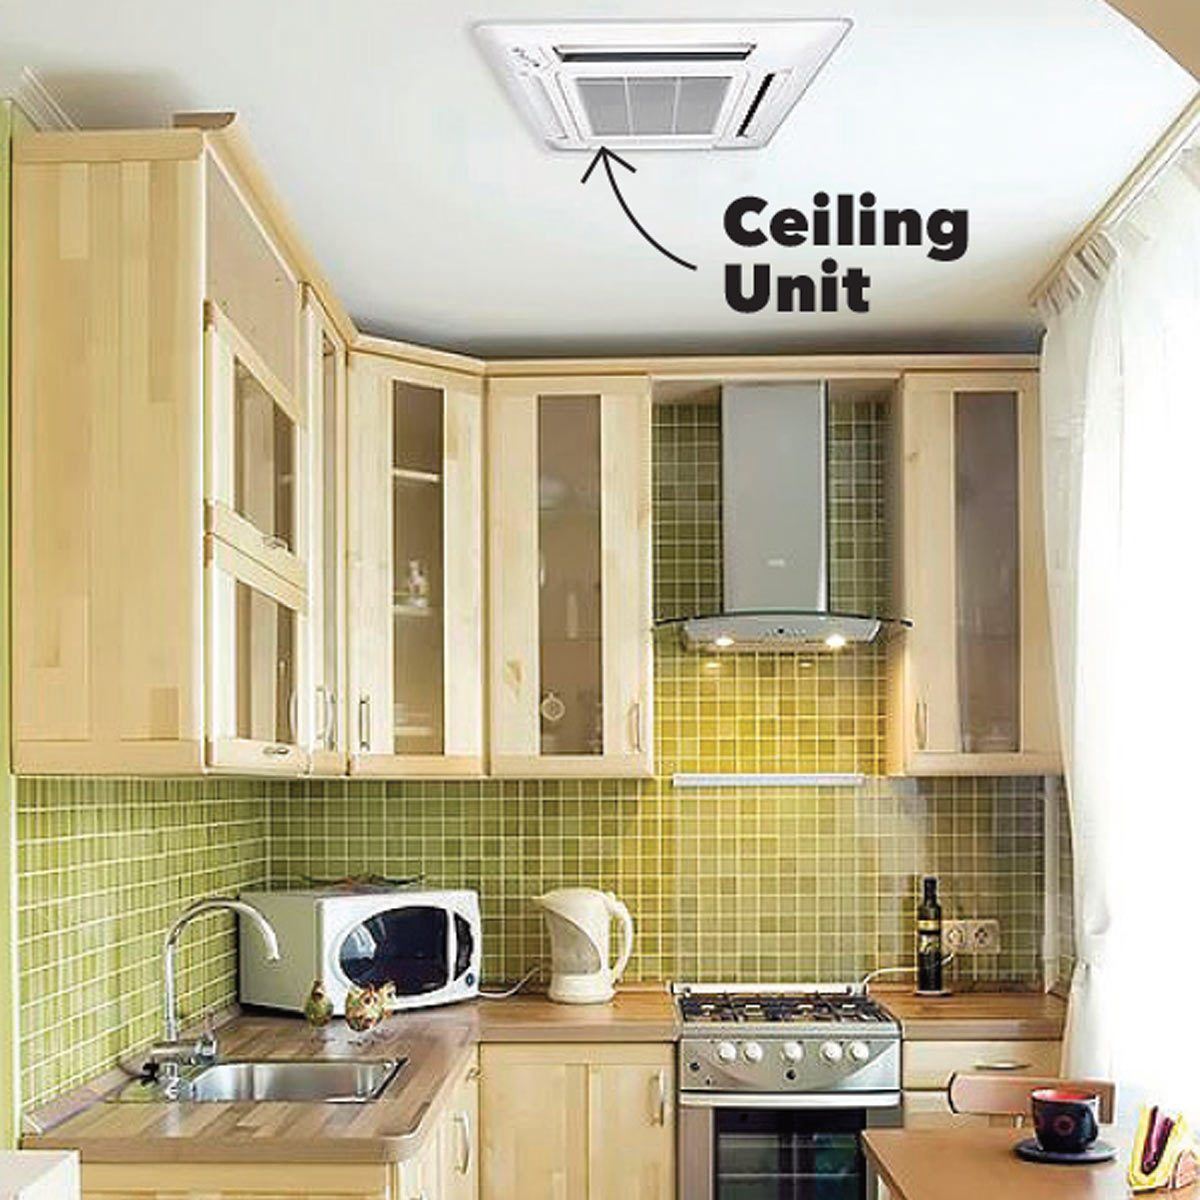 ceiling mini-split unit kitchen